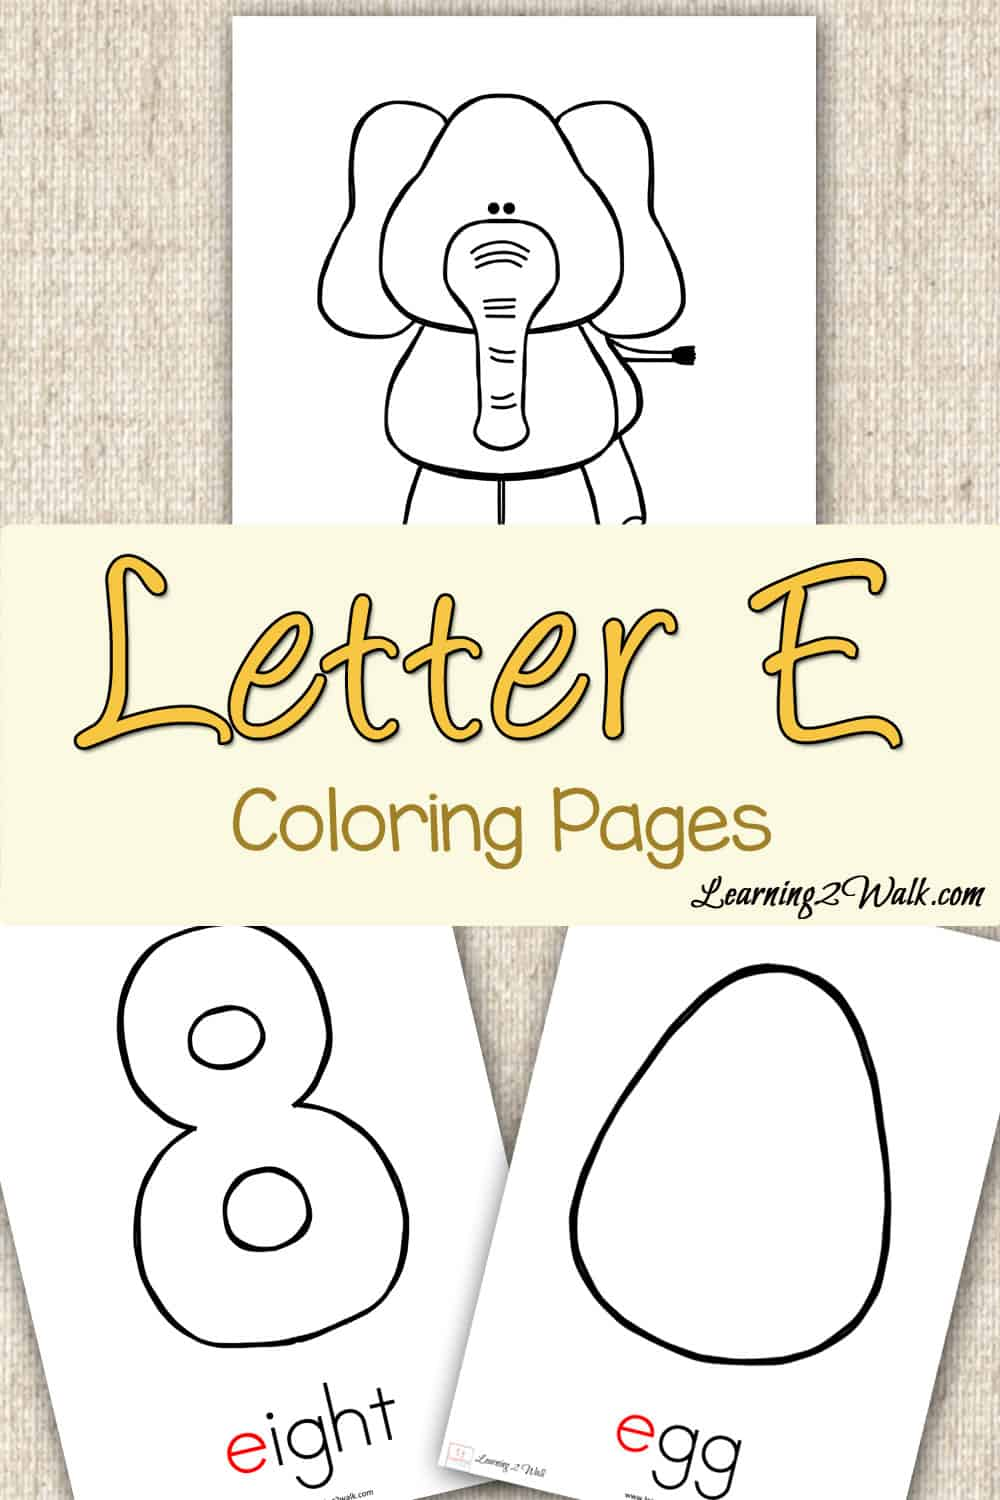 Preschool Letter Activities: Letter E Coloring Pages